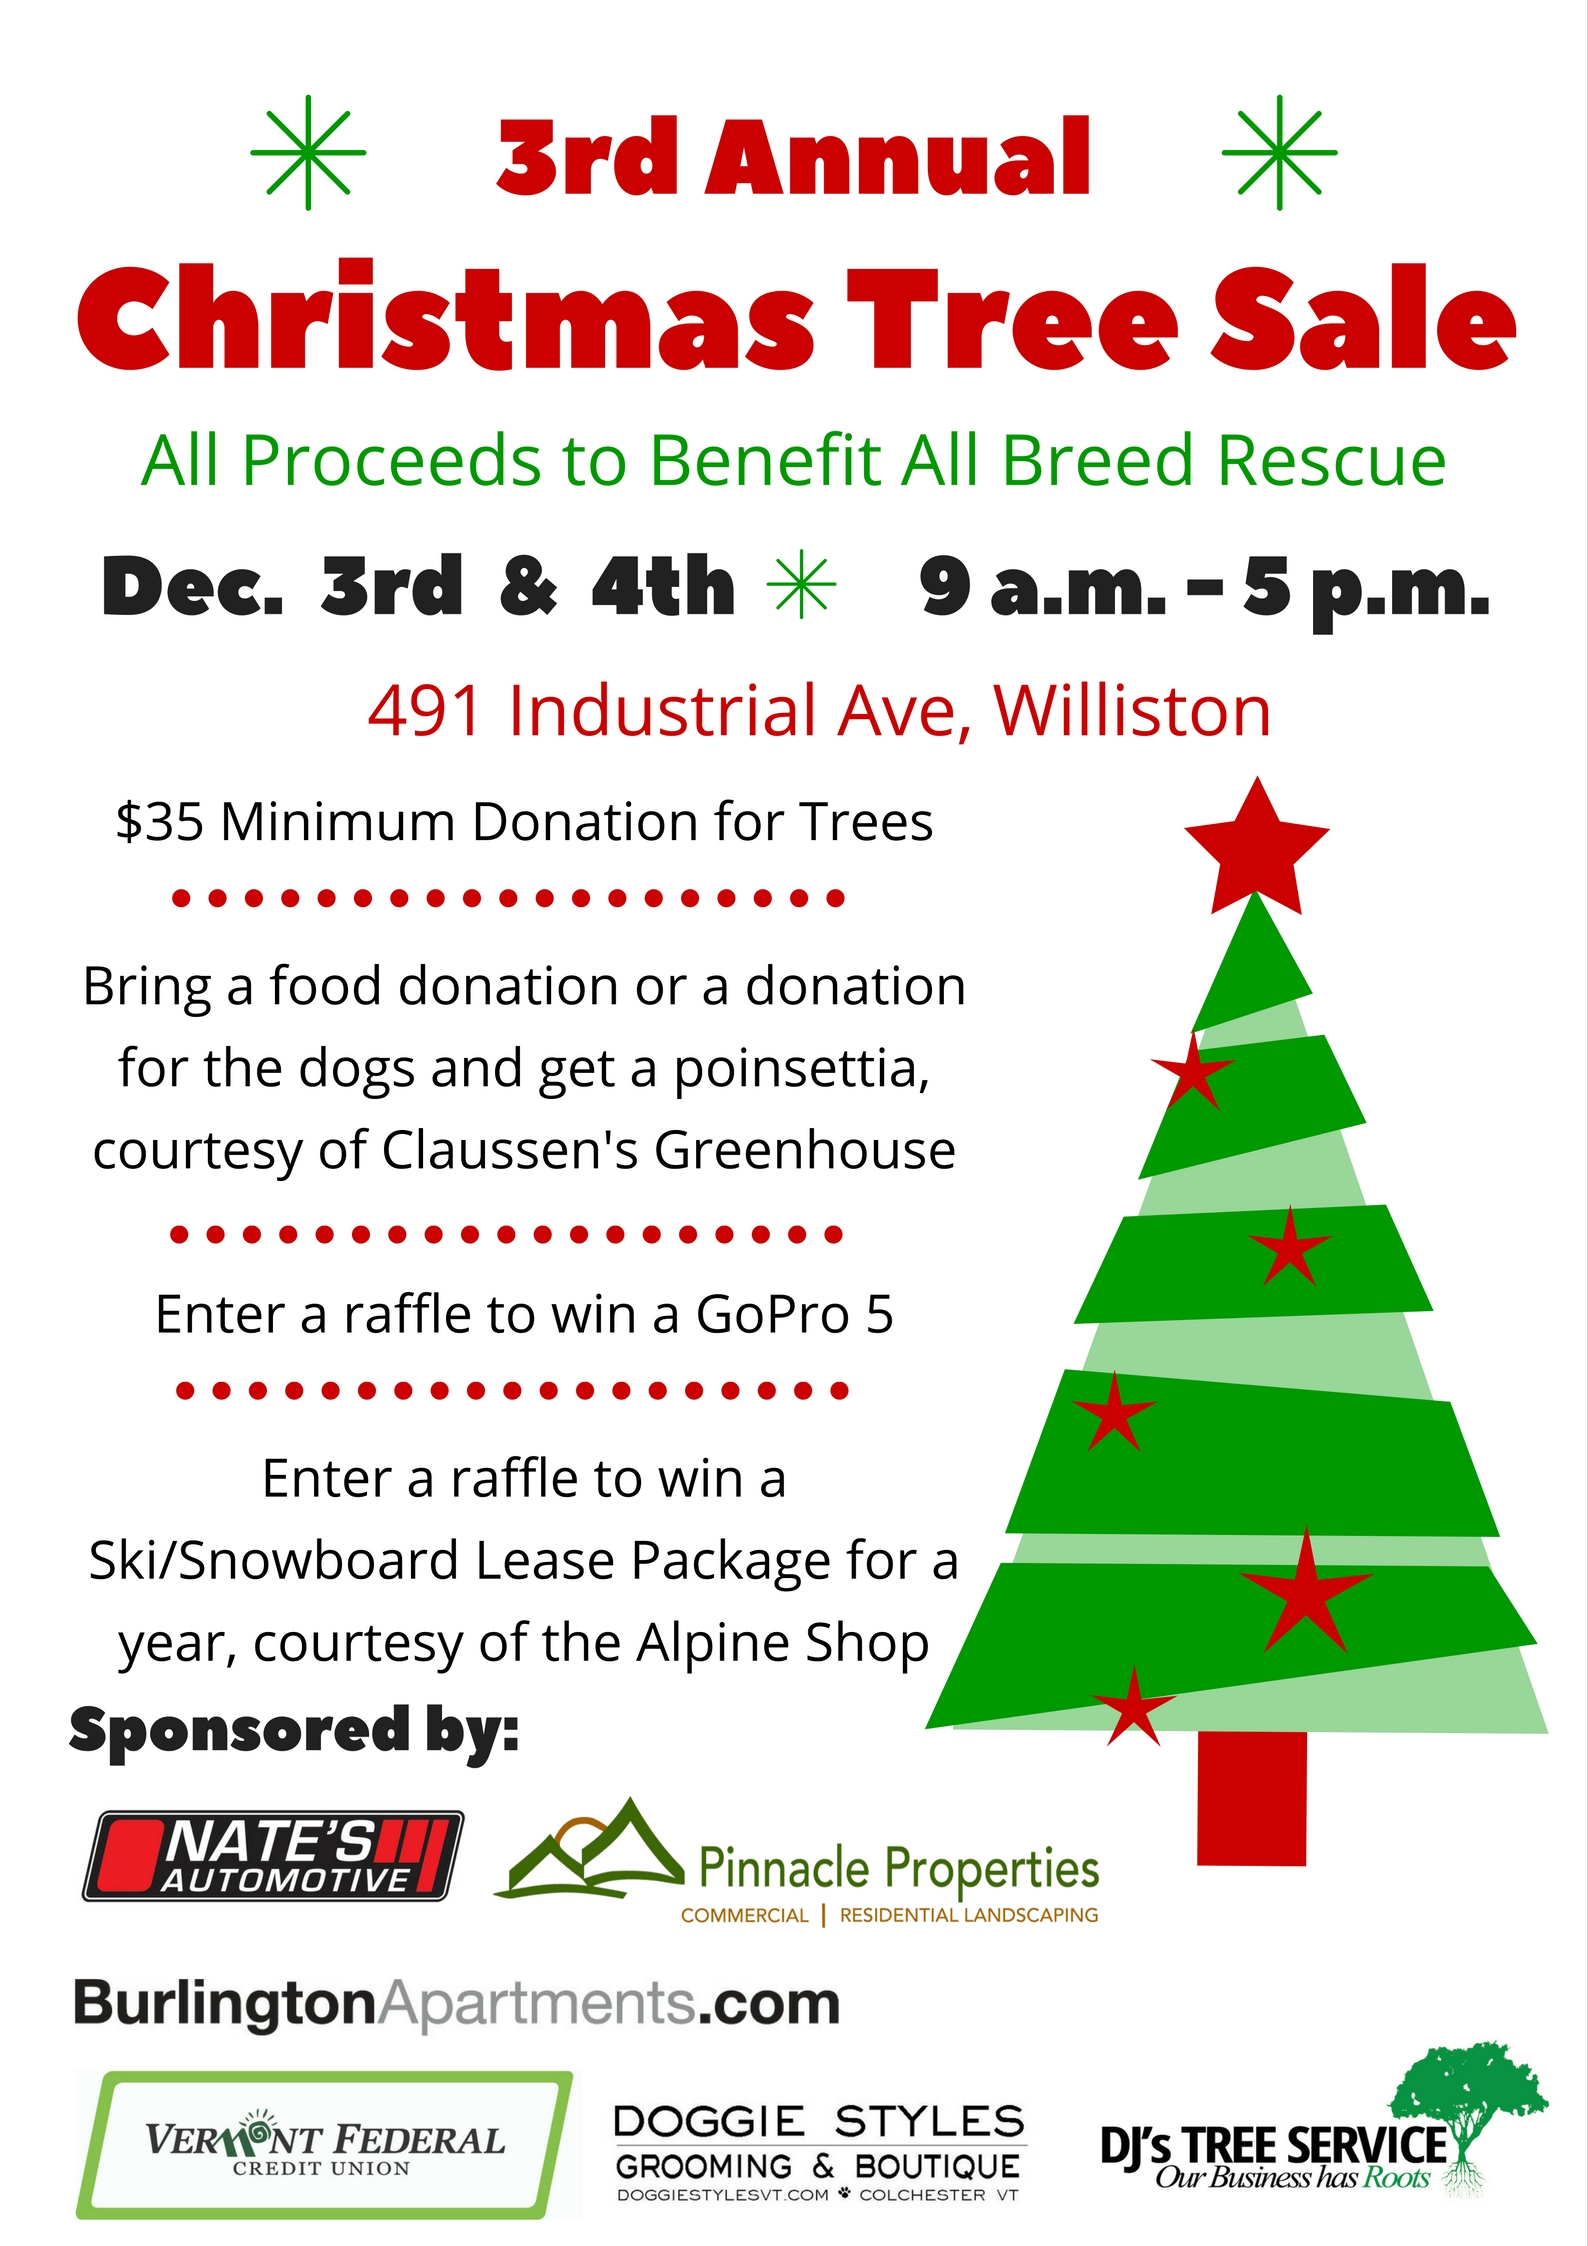 map 491 industrial avenue williston vt 05495 see all of the animals attending this event - Christmas Tree Shop Williston Vt